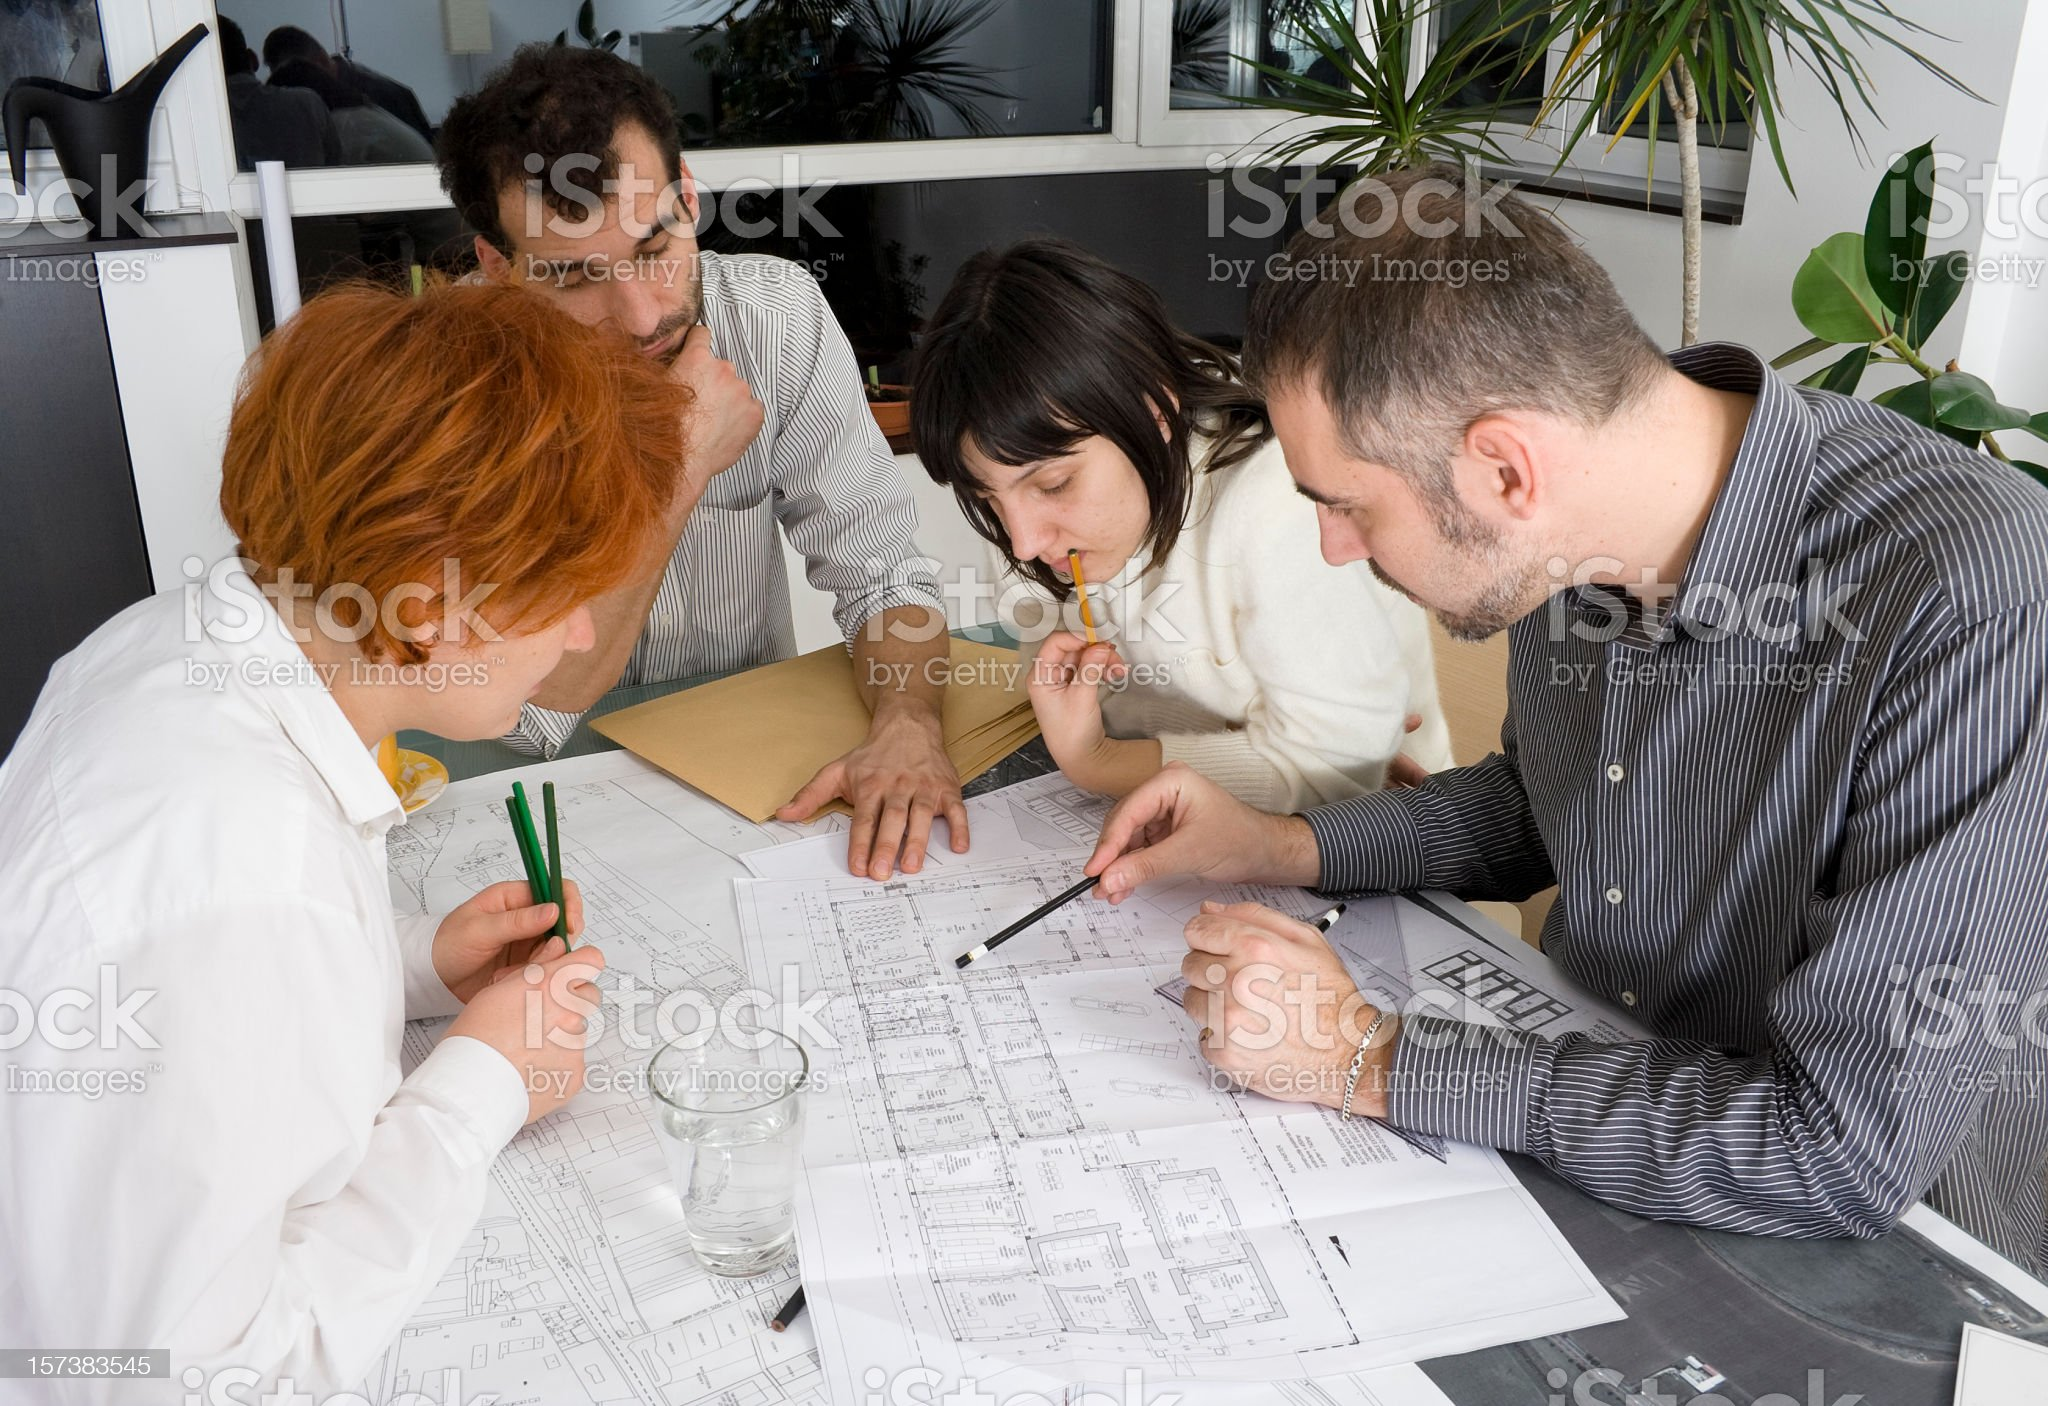 Architects sitting together working on a blue print royalty-free stock photo